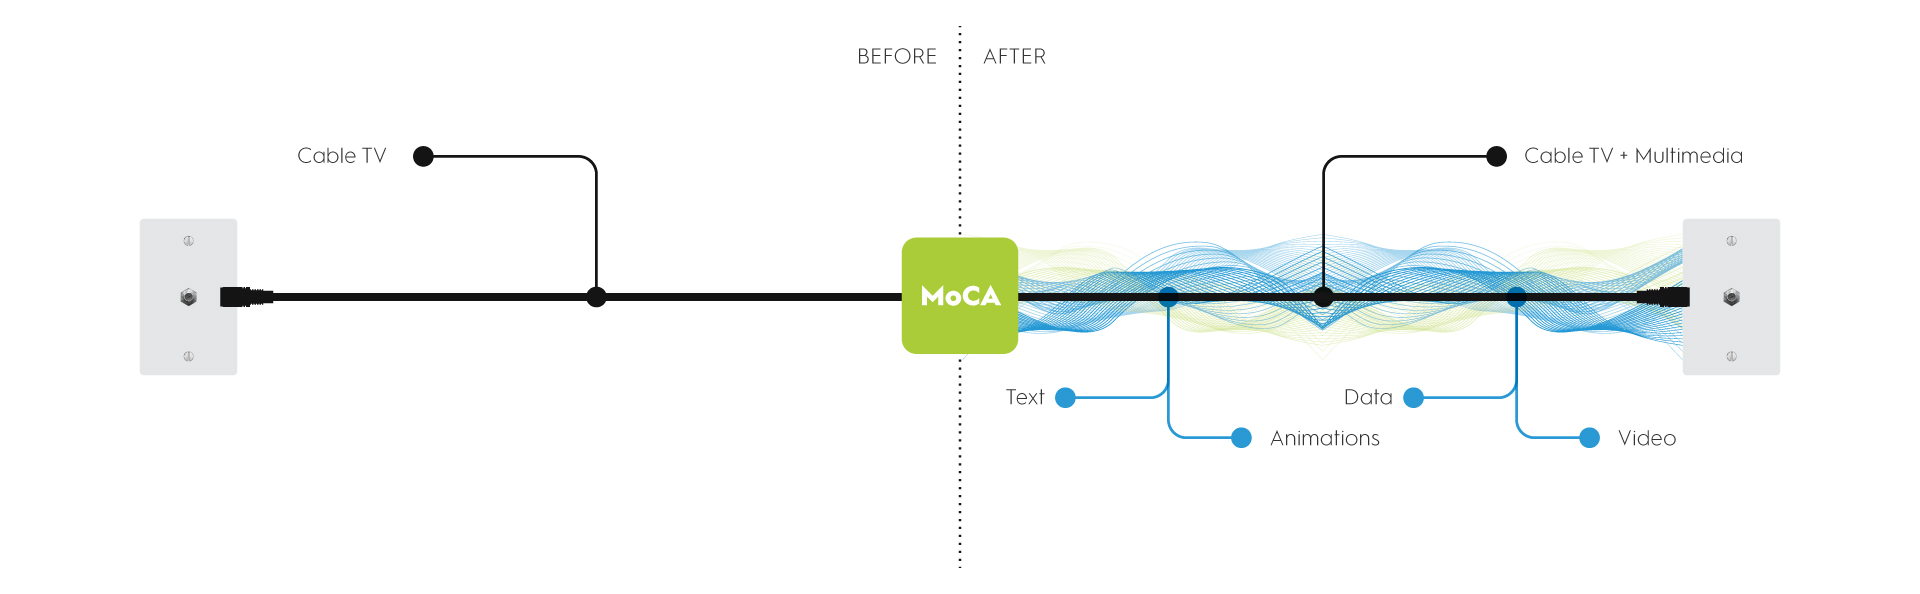 Does Moca Interfere With Cable Modem